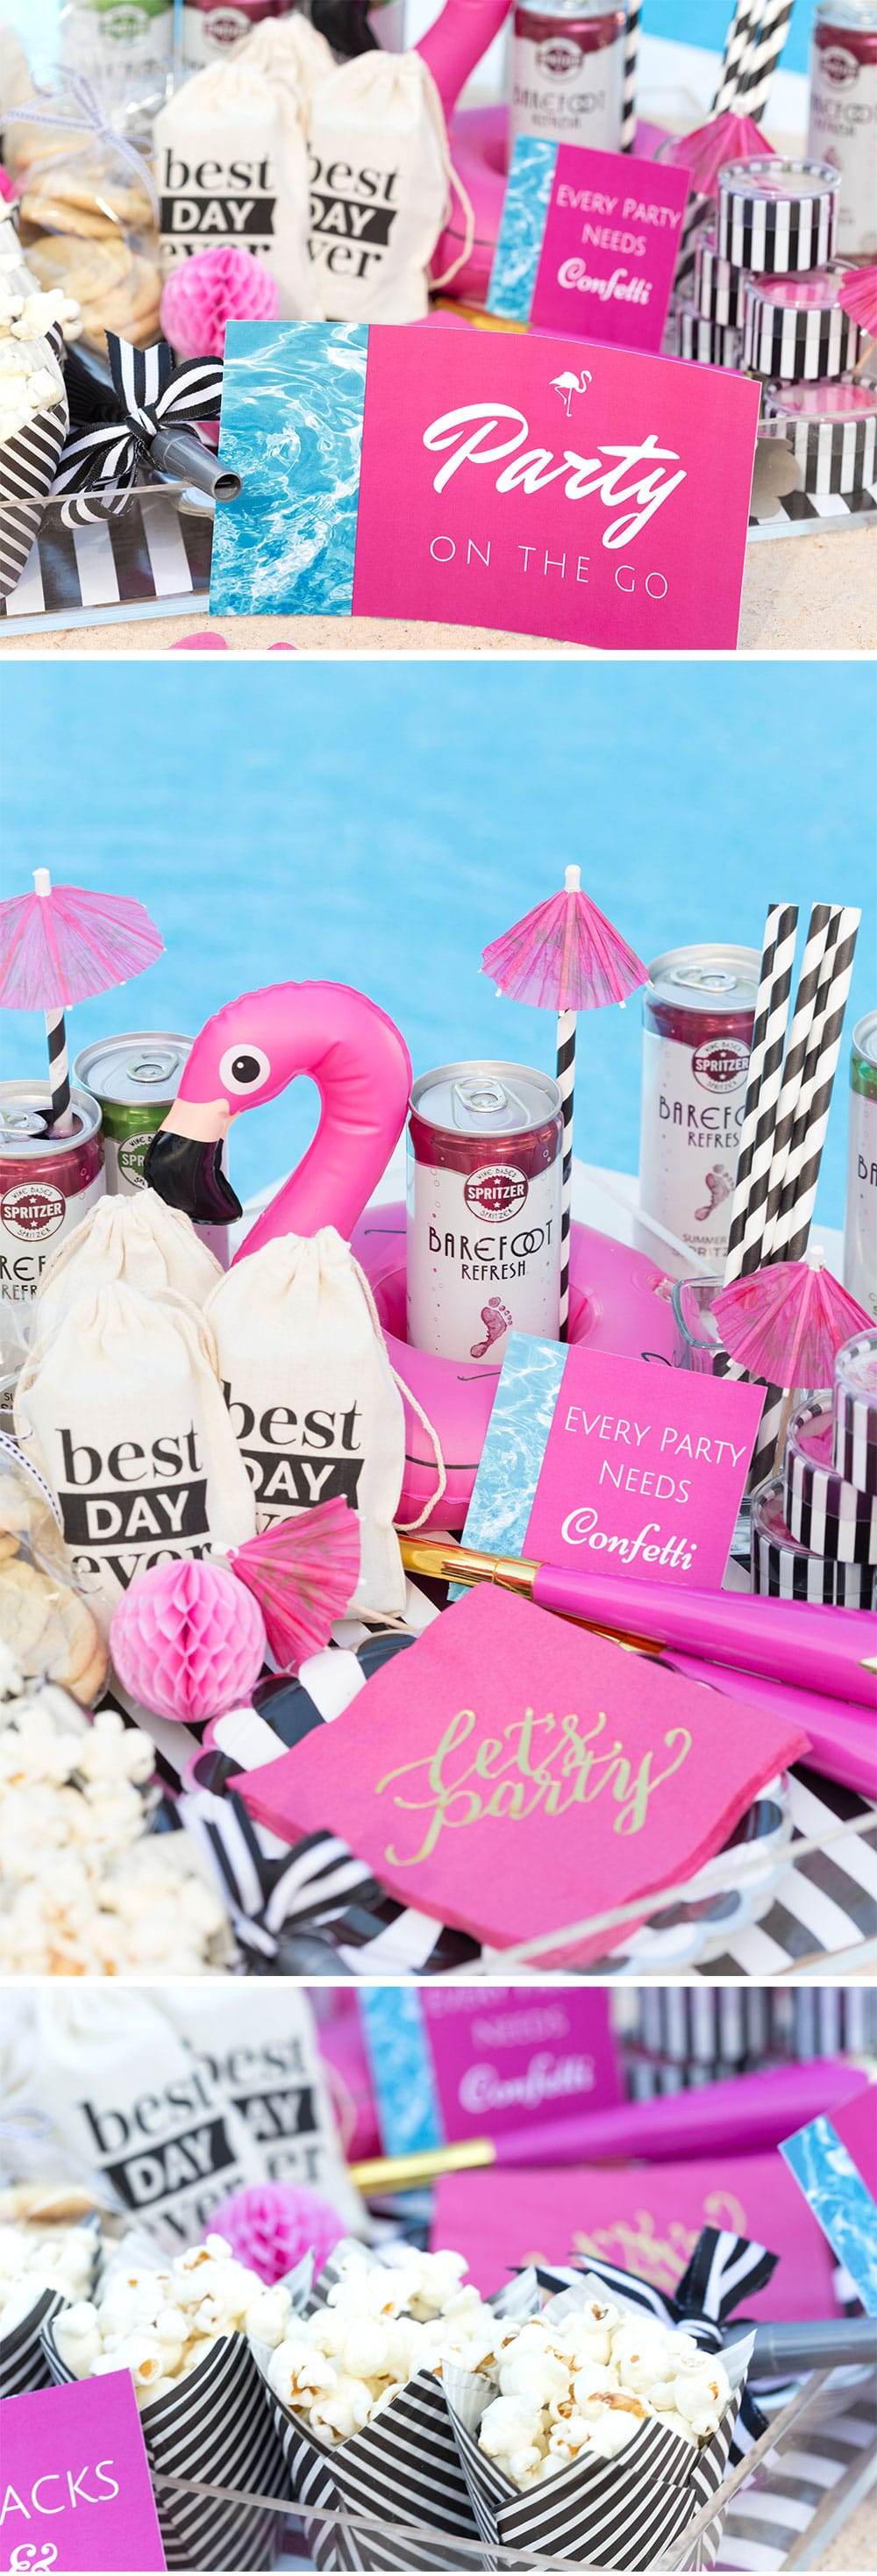 Cute and clever ideas for creating a party on the go!